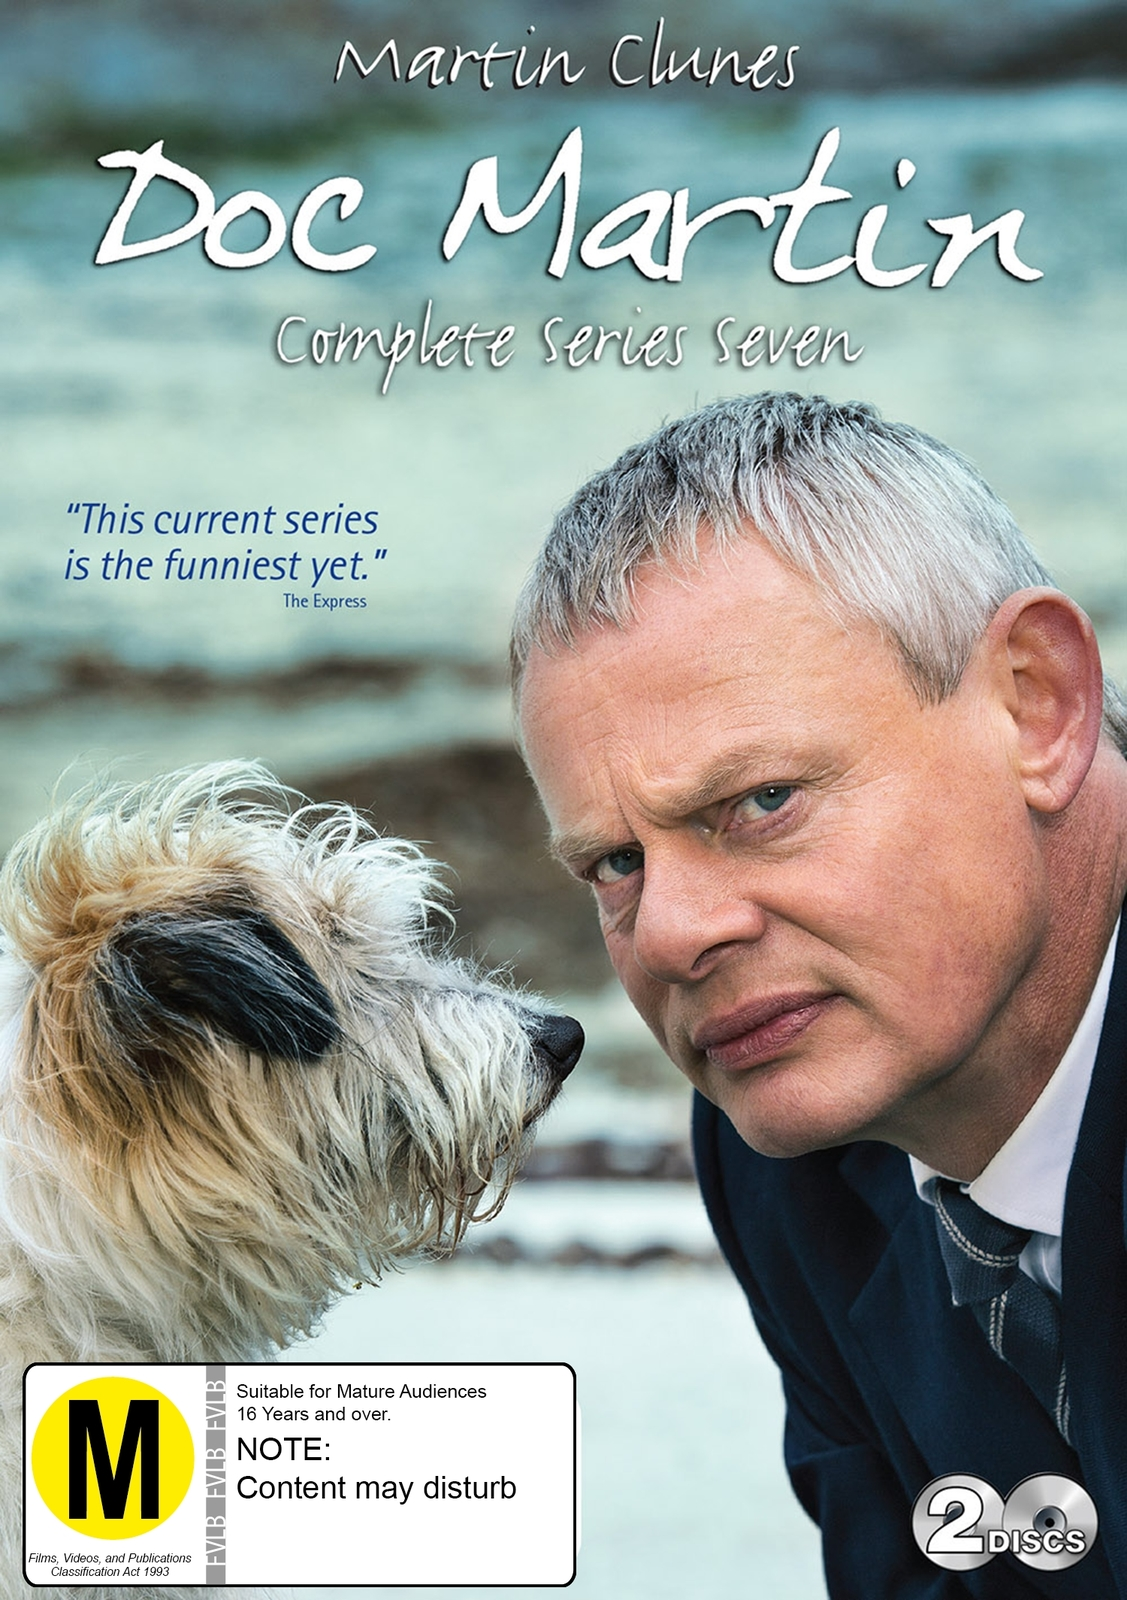 Doc Martin - The Complete Series 7 on DVD image